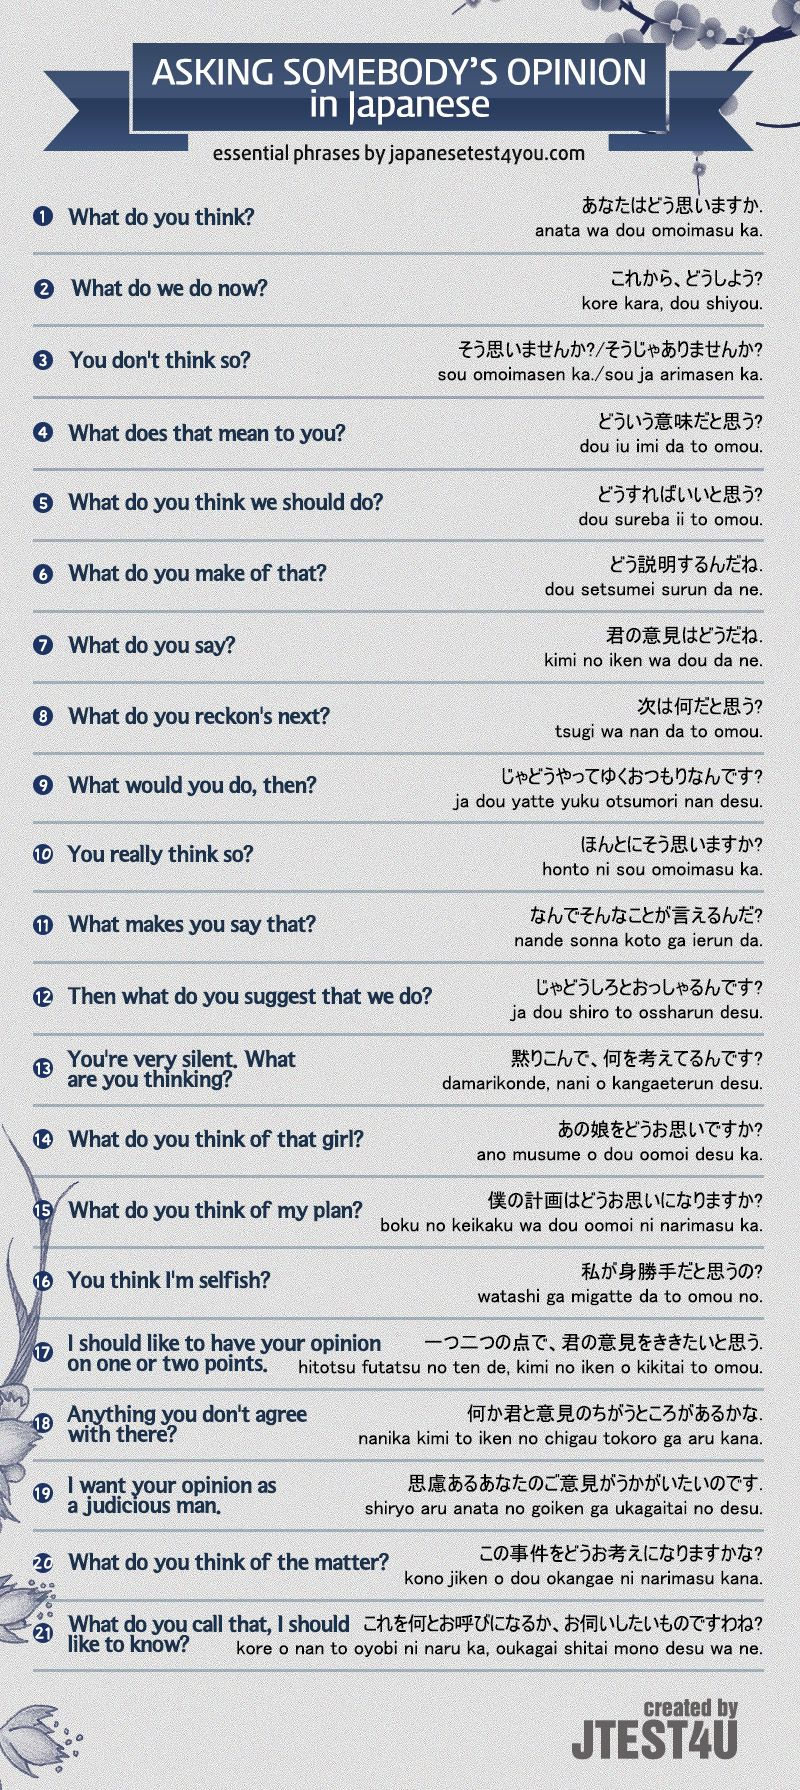 How To Ask For Someones Opinion In Japanese Source N I H O N G O